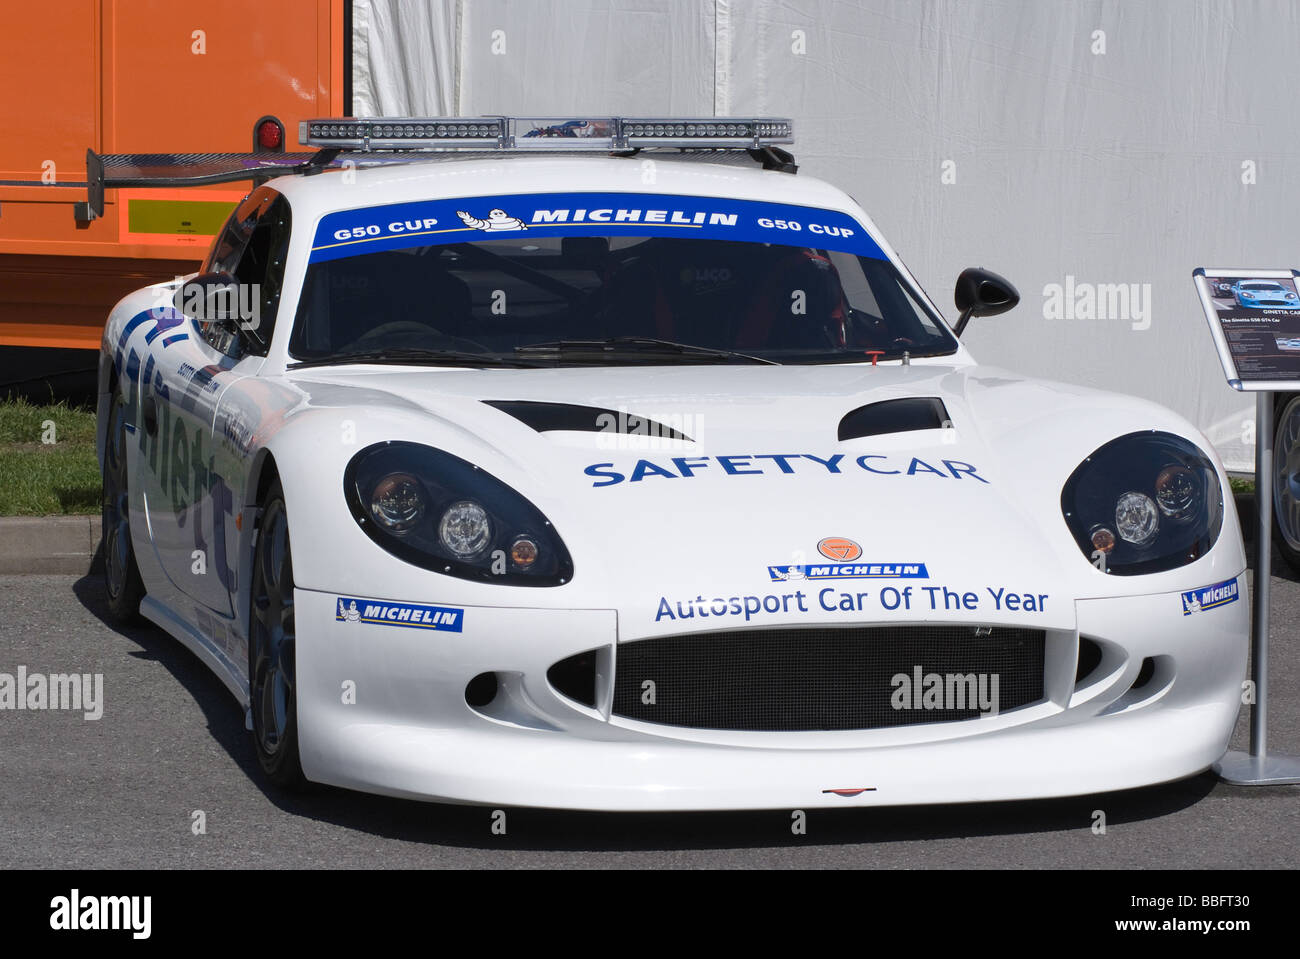 Ginetta G50 Safety Car in Paddock at Oulton Park Motor Racing Circuit Cheshire England United Kingdom UK Stock Photo